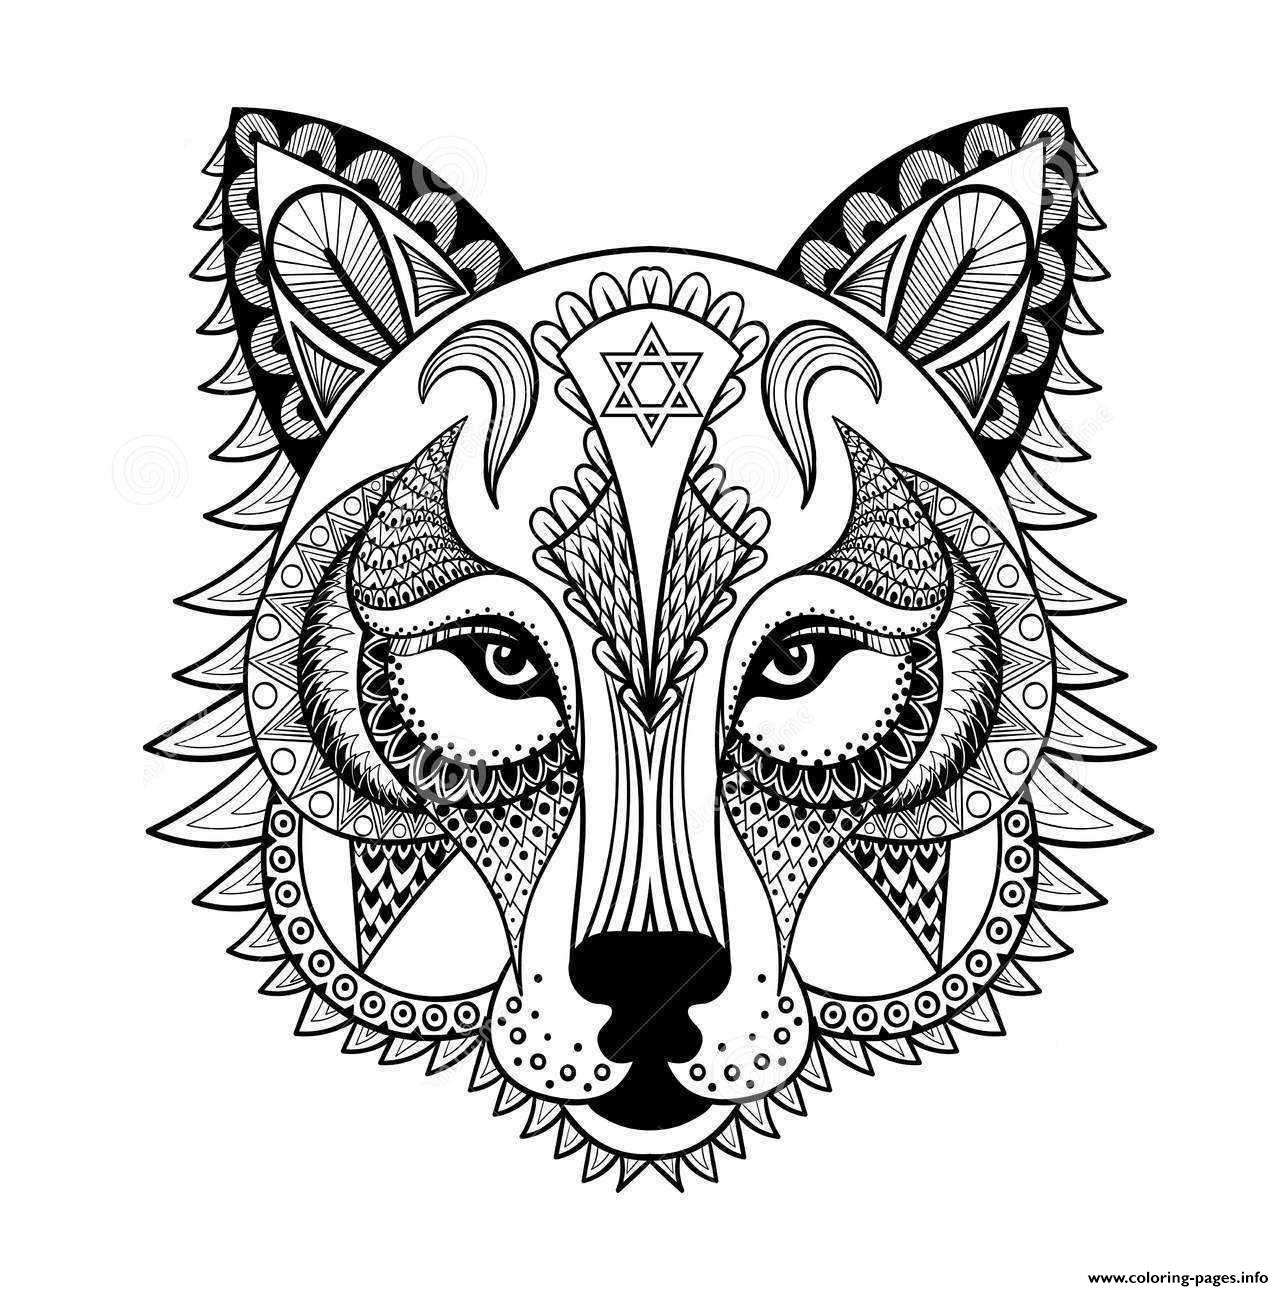 wolf coloring pages for adults wolf 2 by fnigen grayscale coloring adult coloring for pages coloring adults wolf